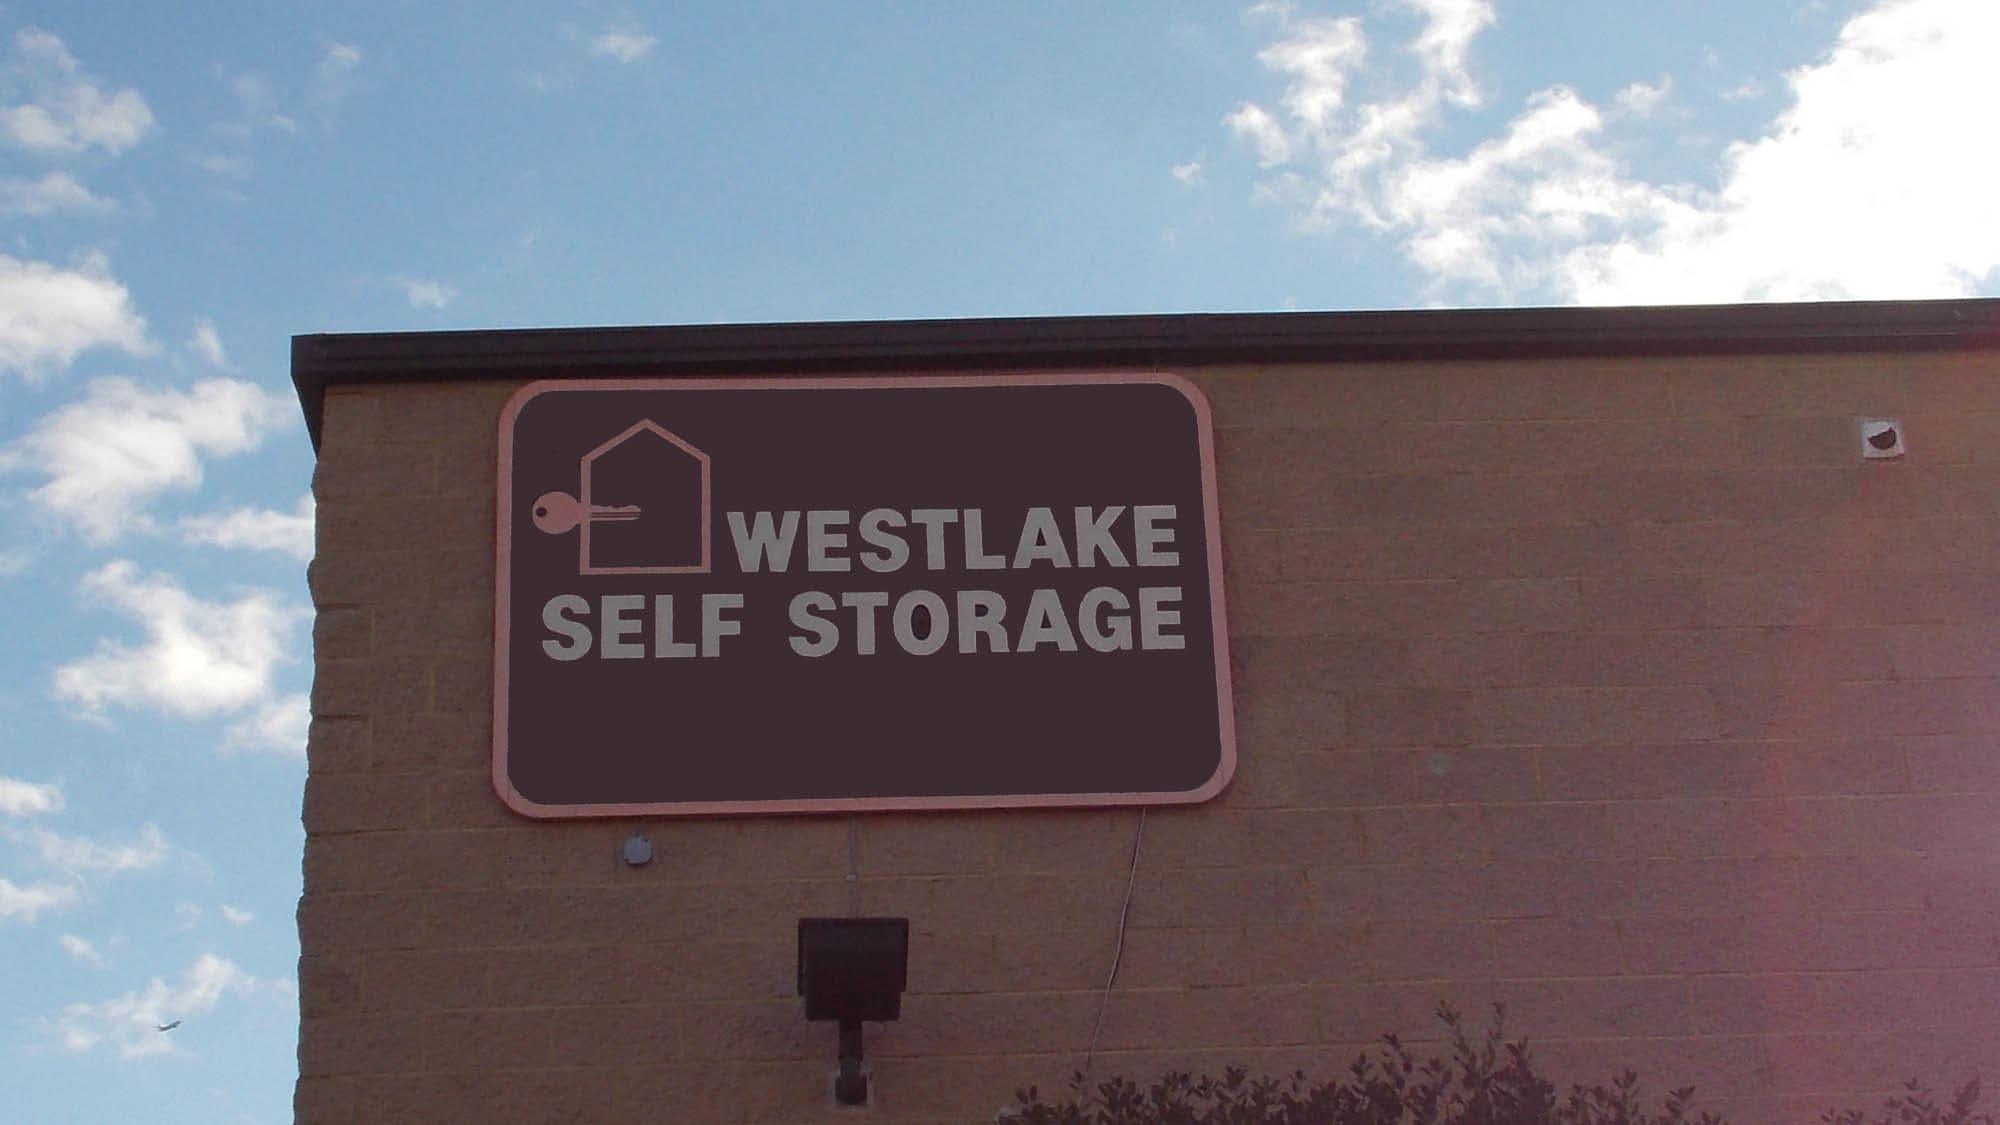 Exterior of Westlake Self Storage in Waldorf, MD